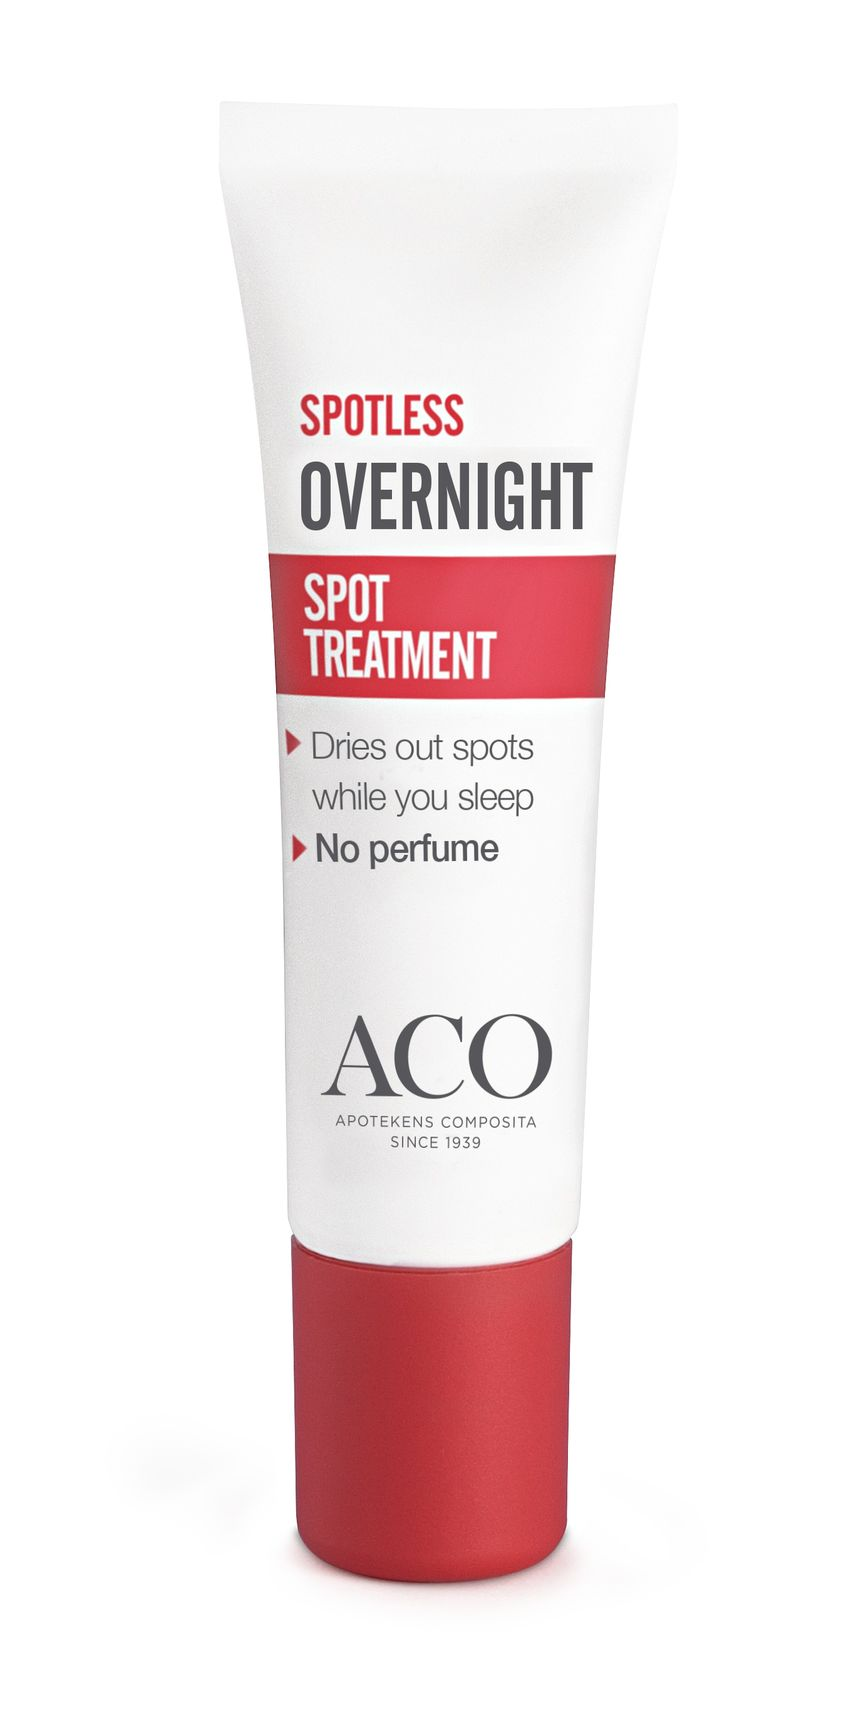 Aco spotless overnight treatm